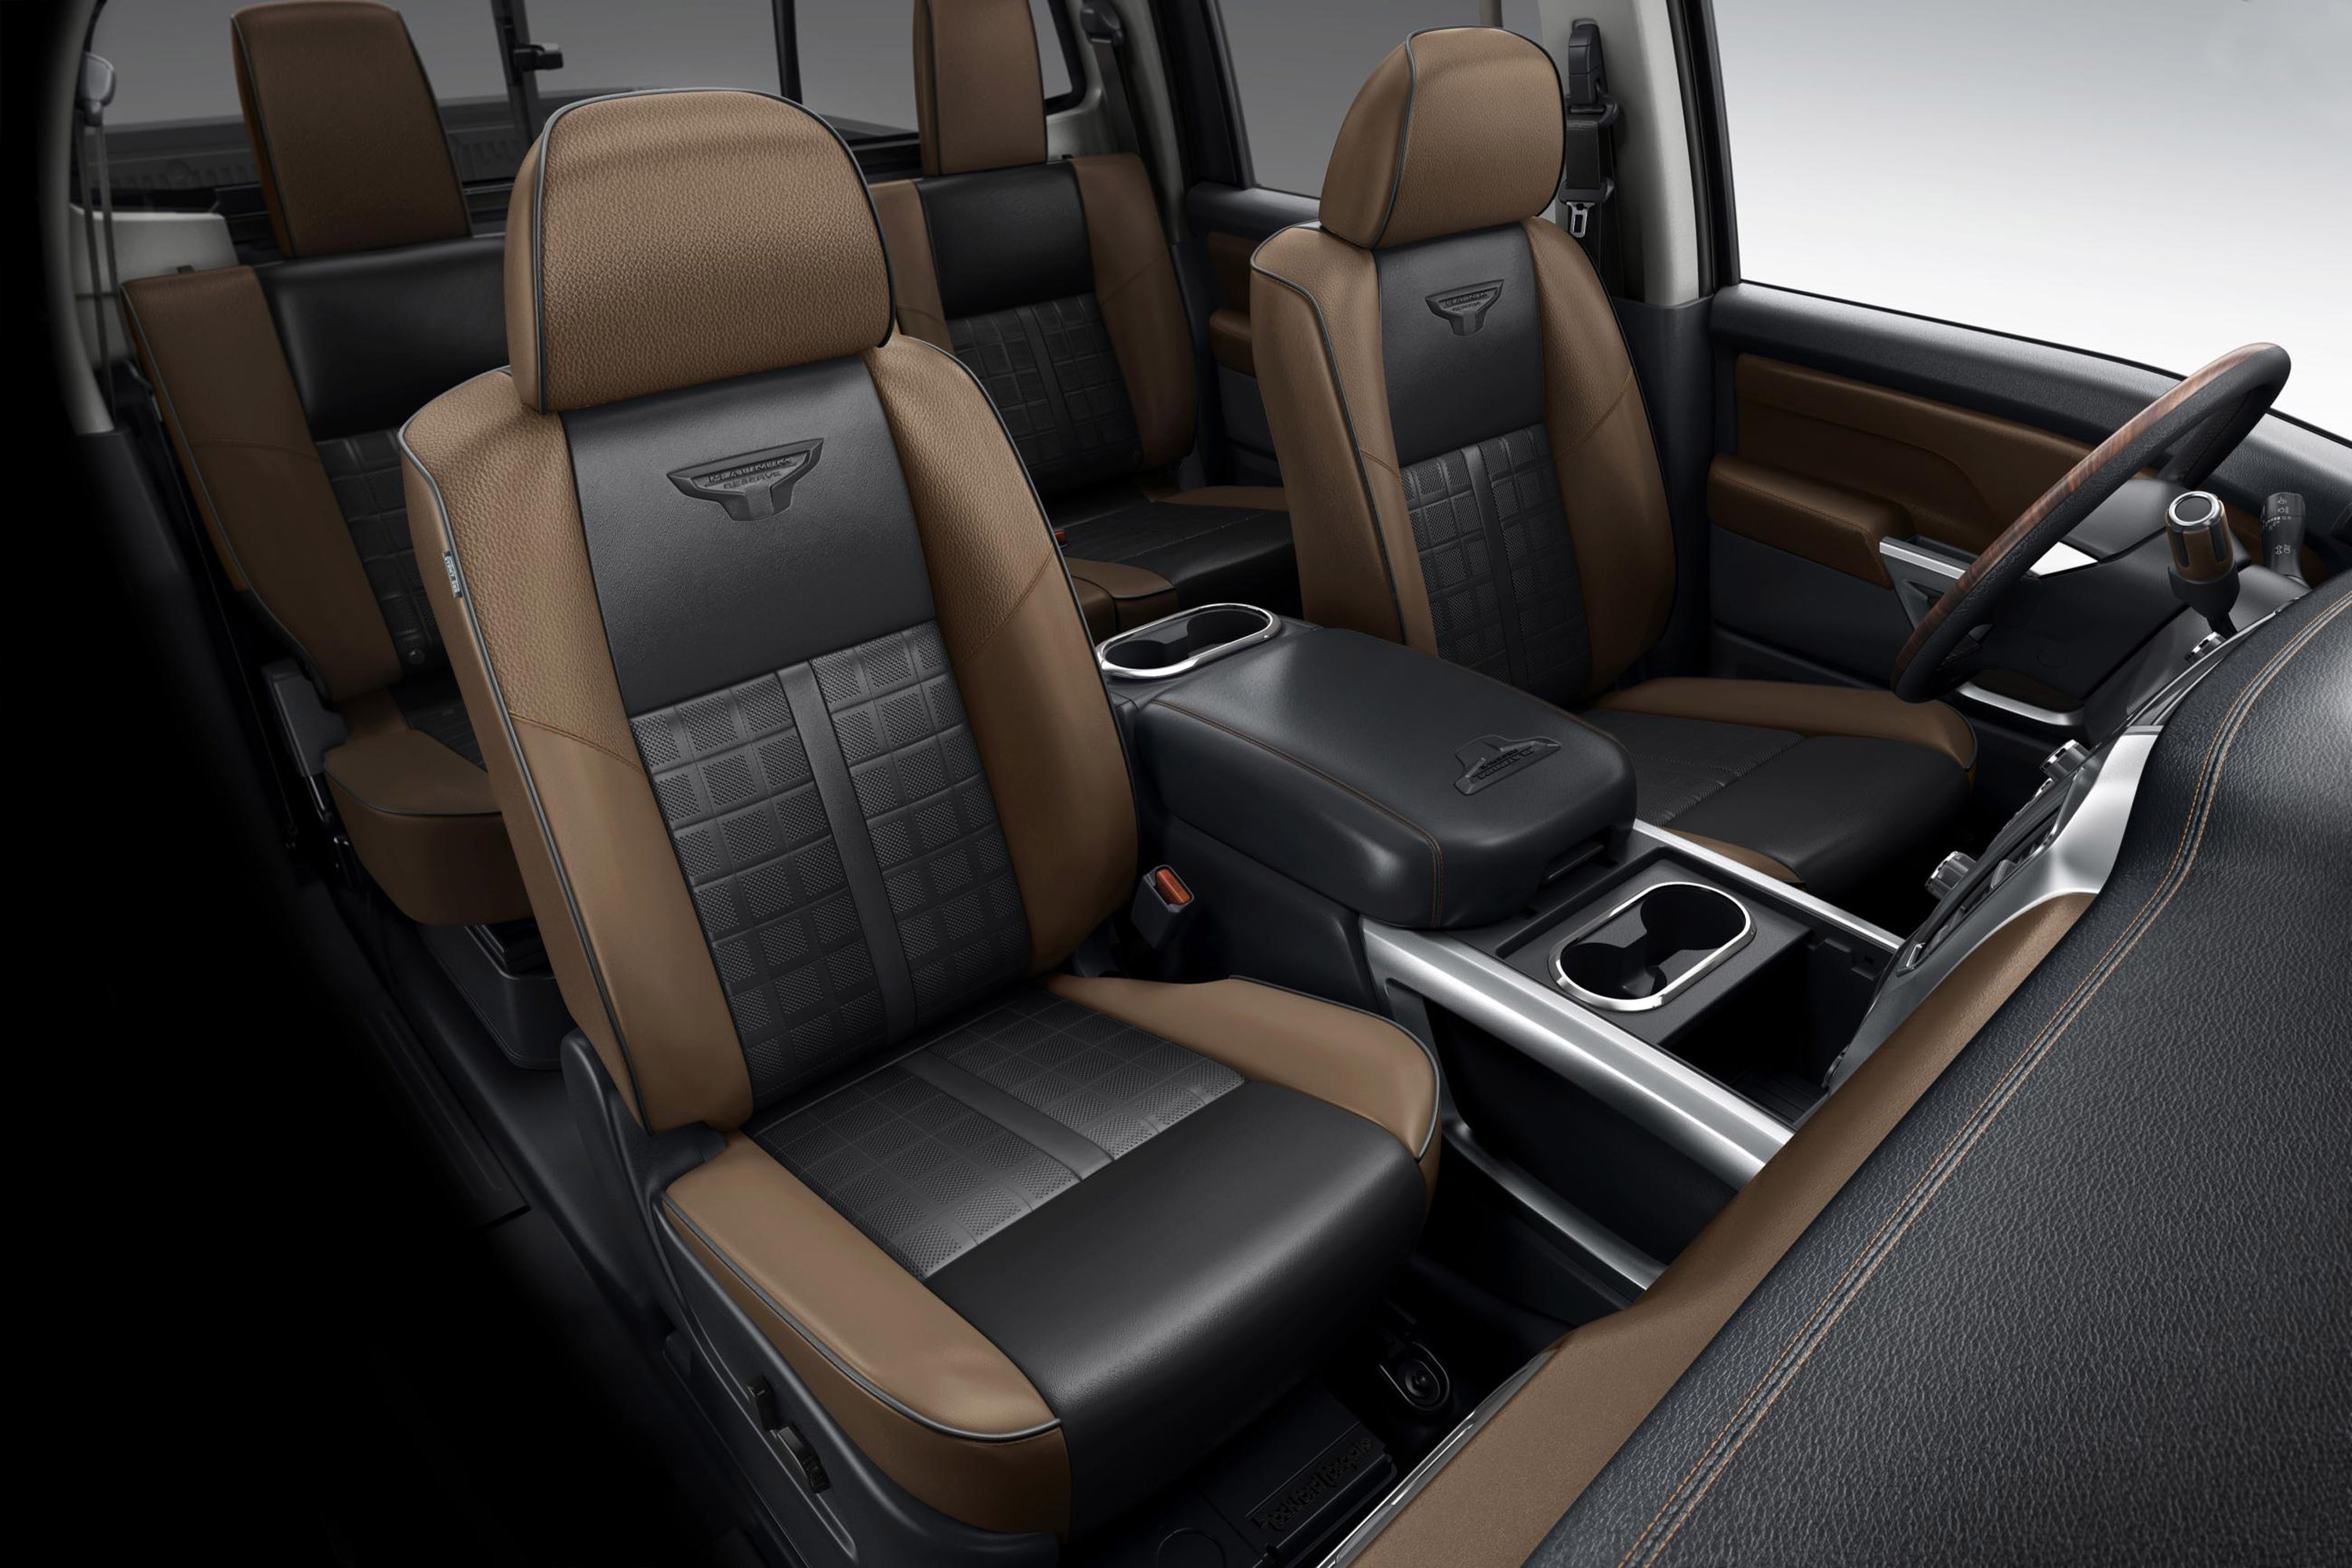 2016 Nissan Titan Xd Interior Seats (View 3 of 10)